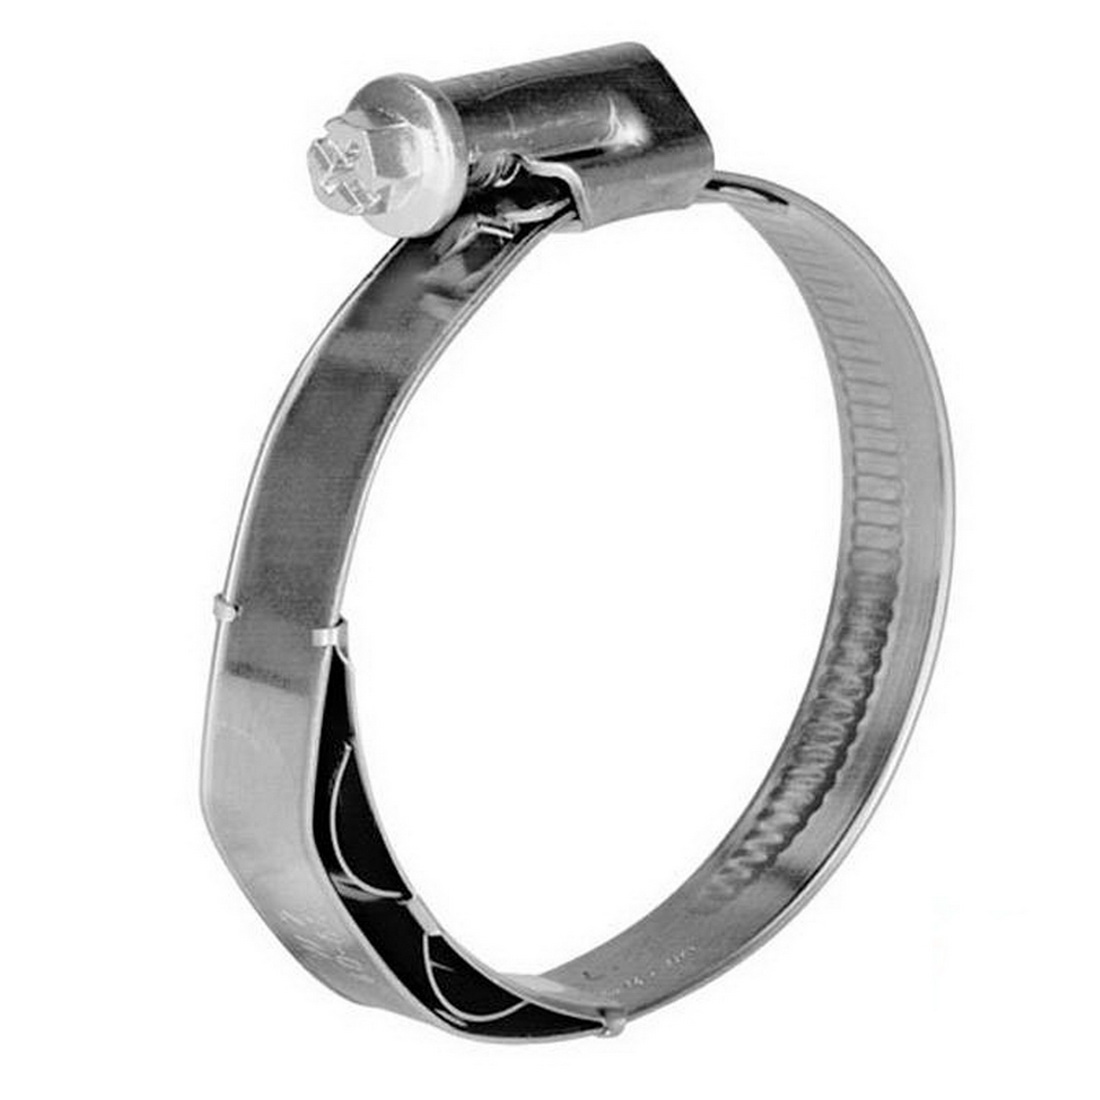 TORRO Worm Drive Hose Clamp 30-45mm 12mm Band W3 430 Stainless Steel P1 WDHC304512W3